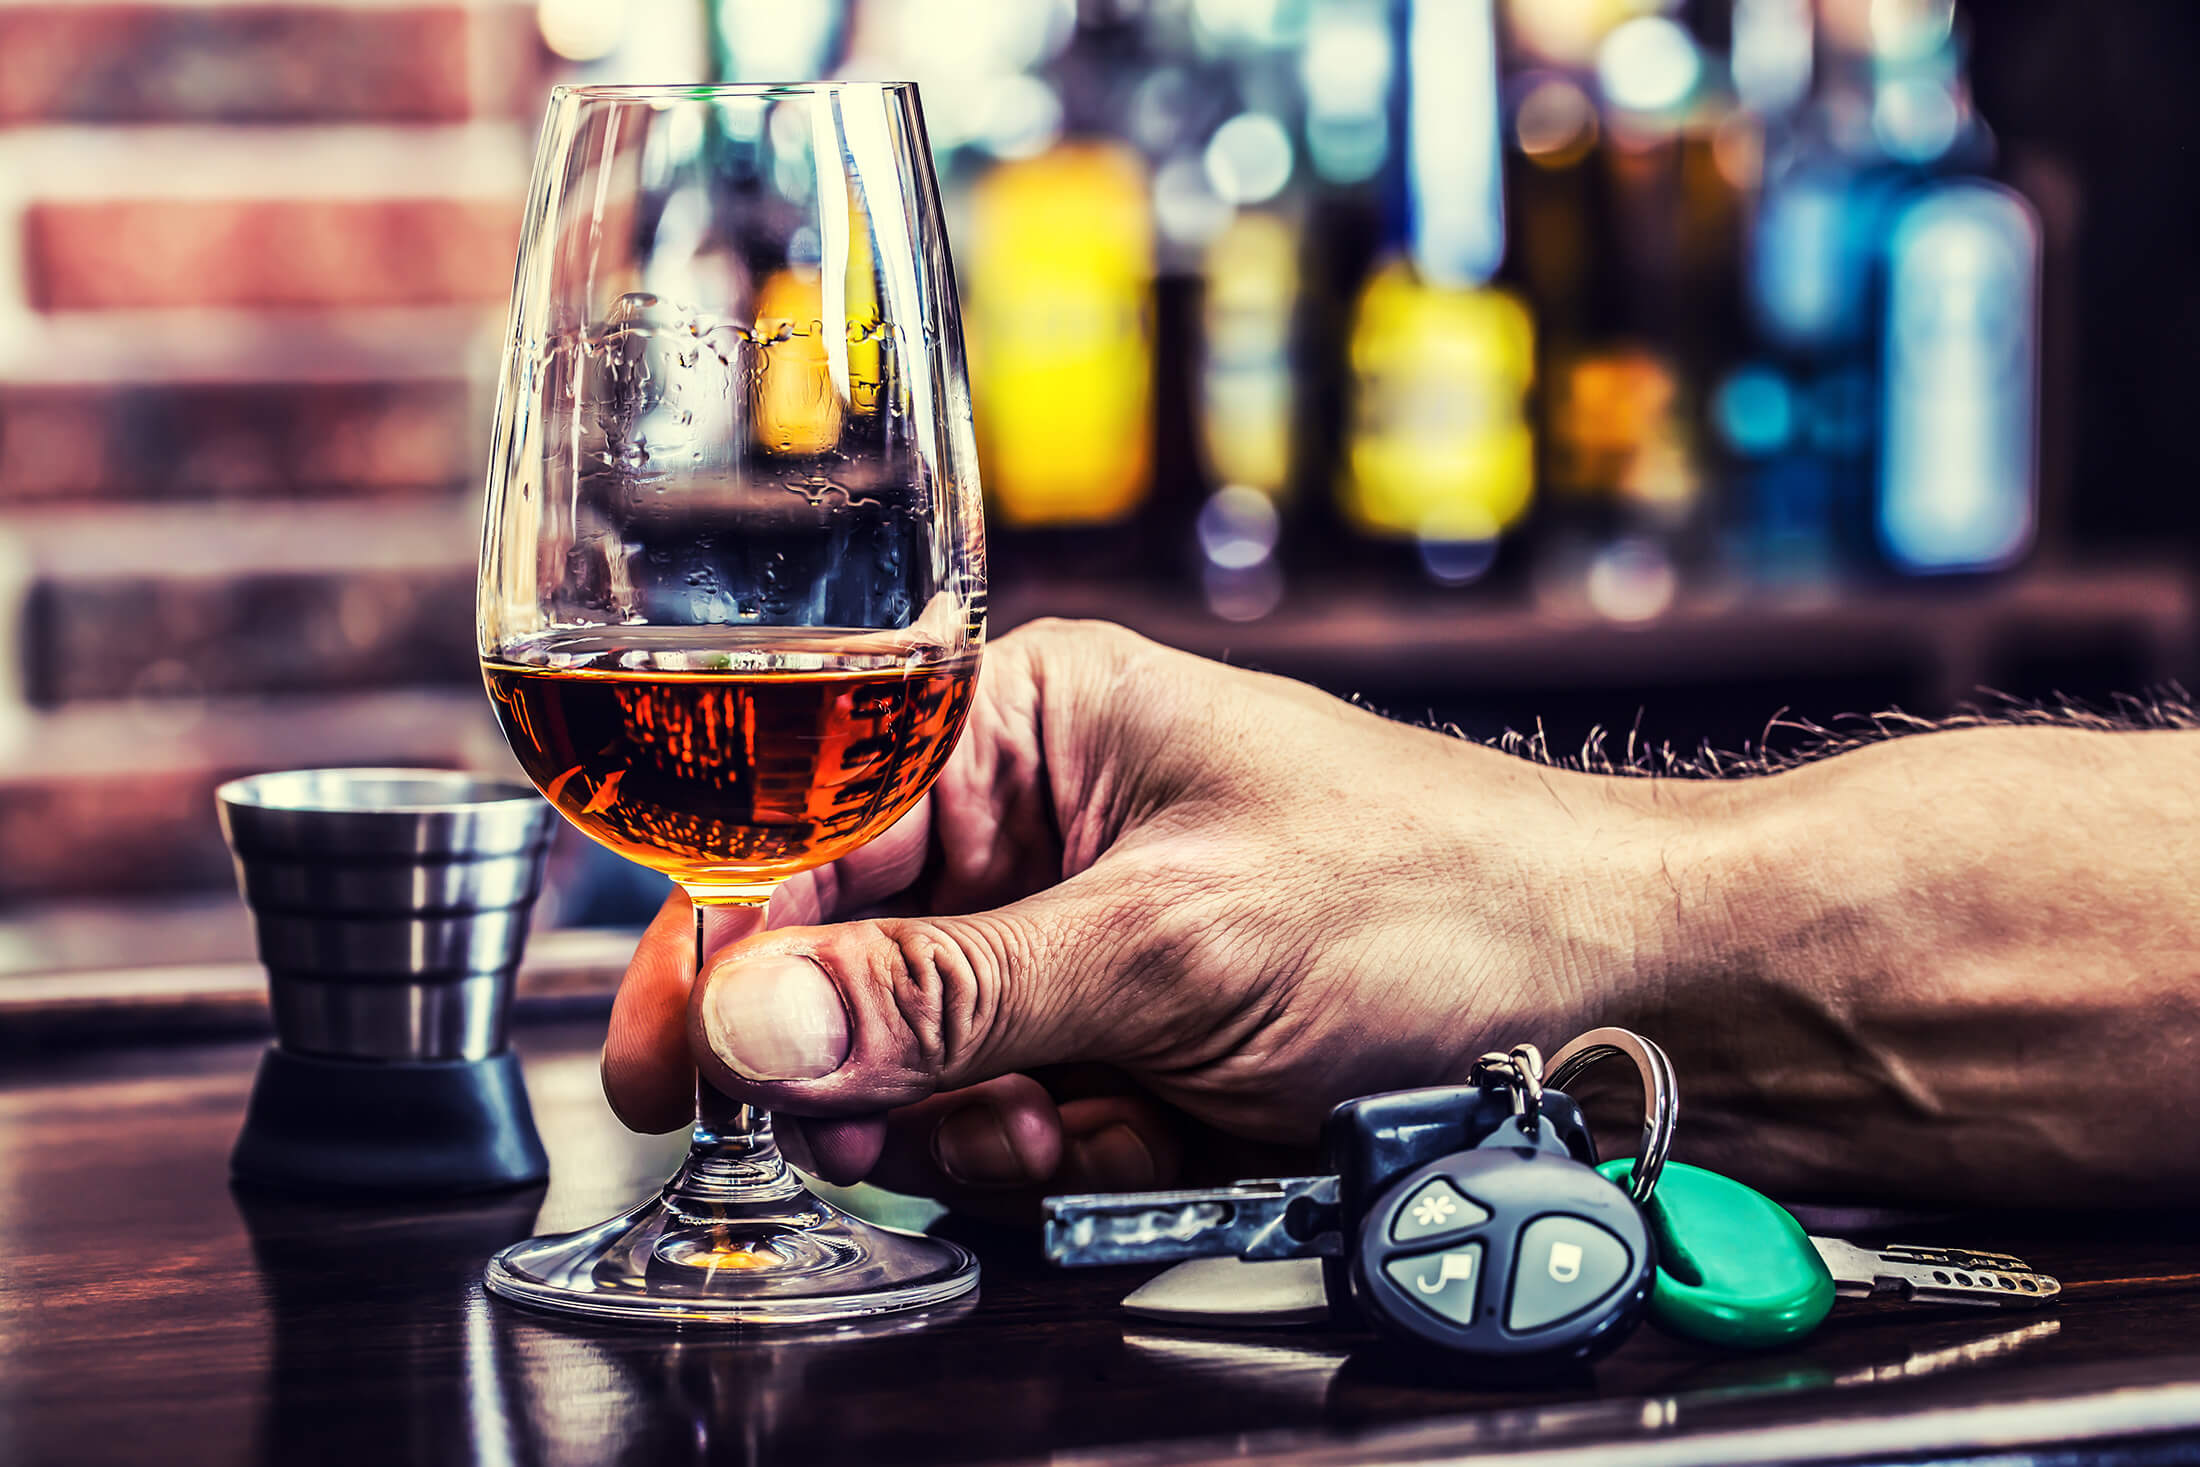 Misdemeanor DUI Illinois